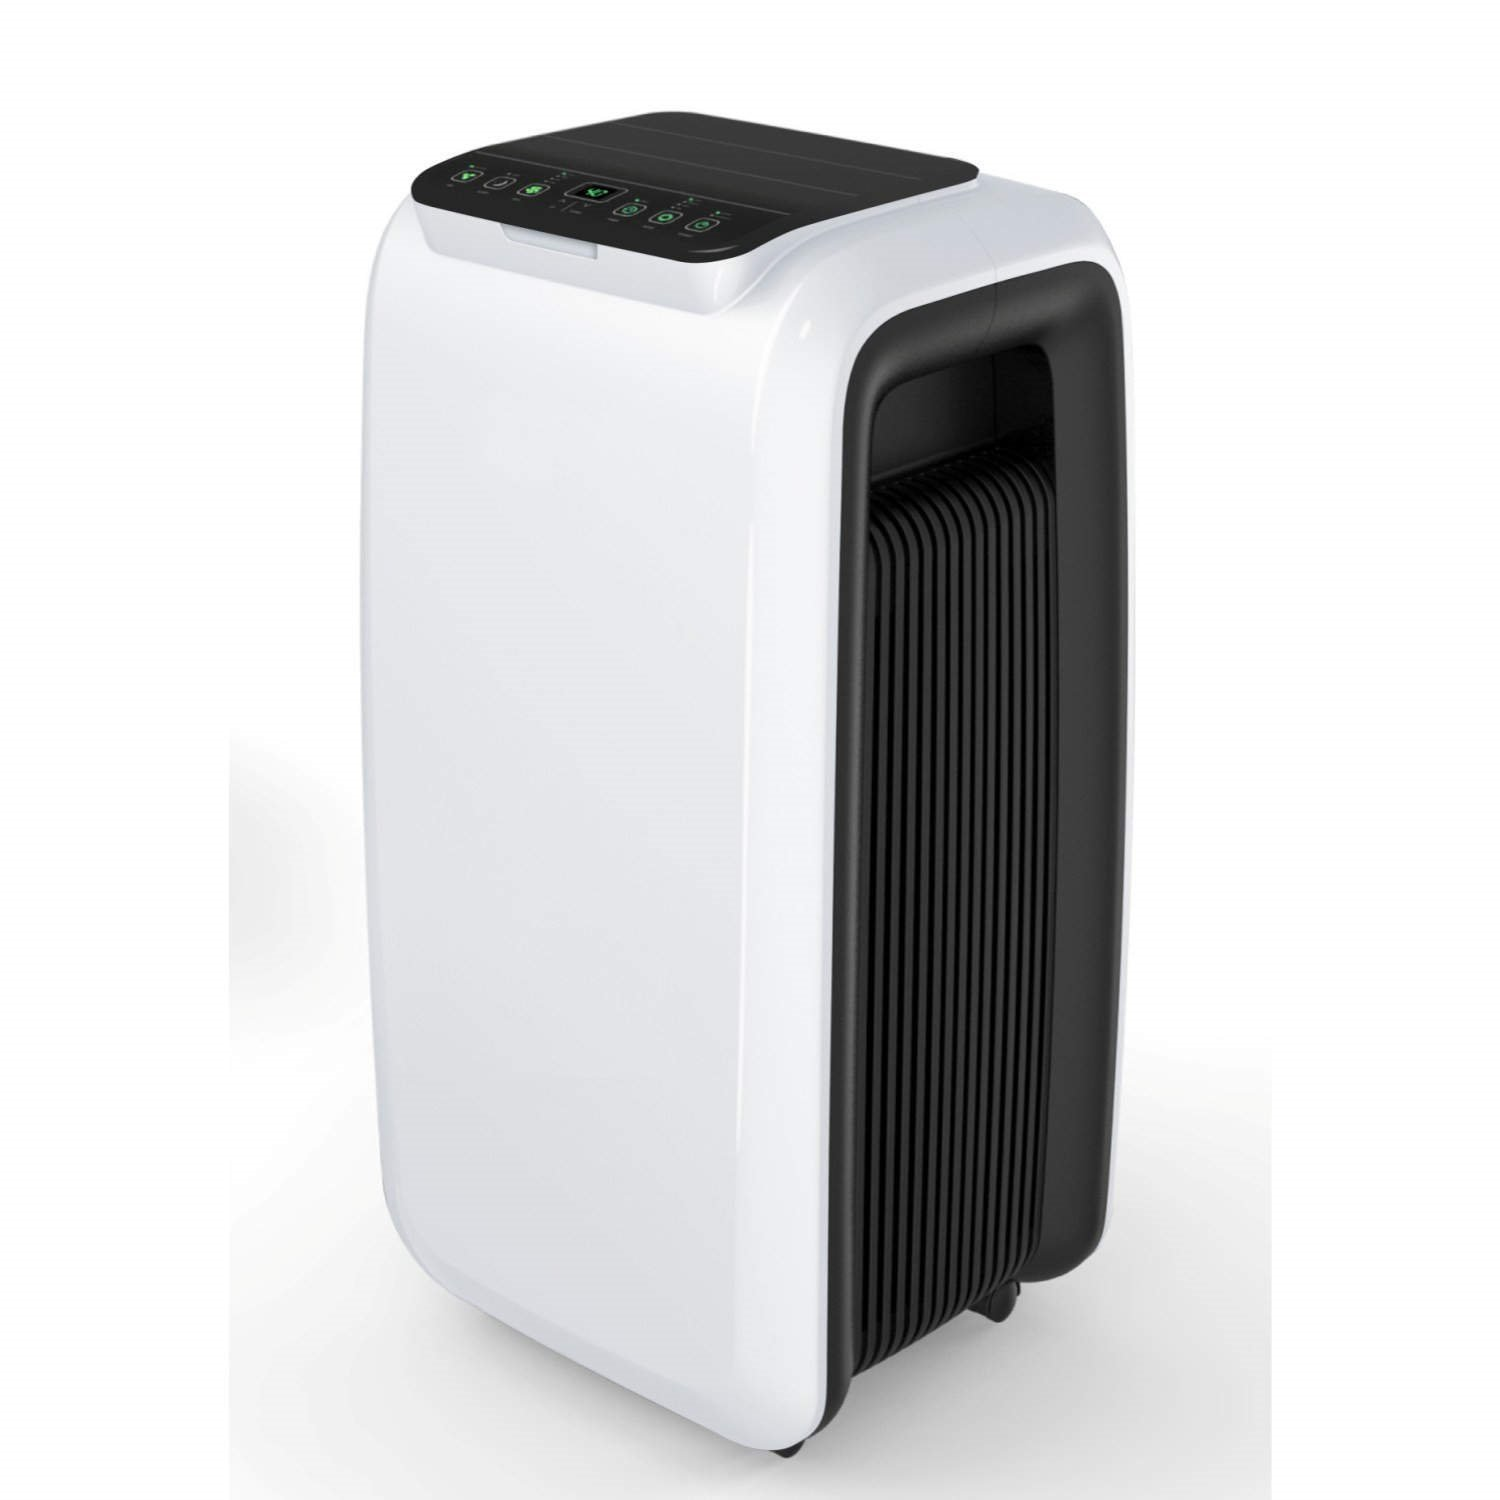 Review Of The Amcor 12000 Btu Portable Air Conditioning Unit